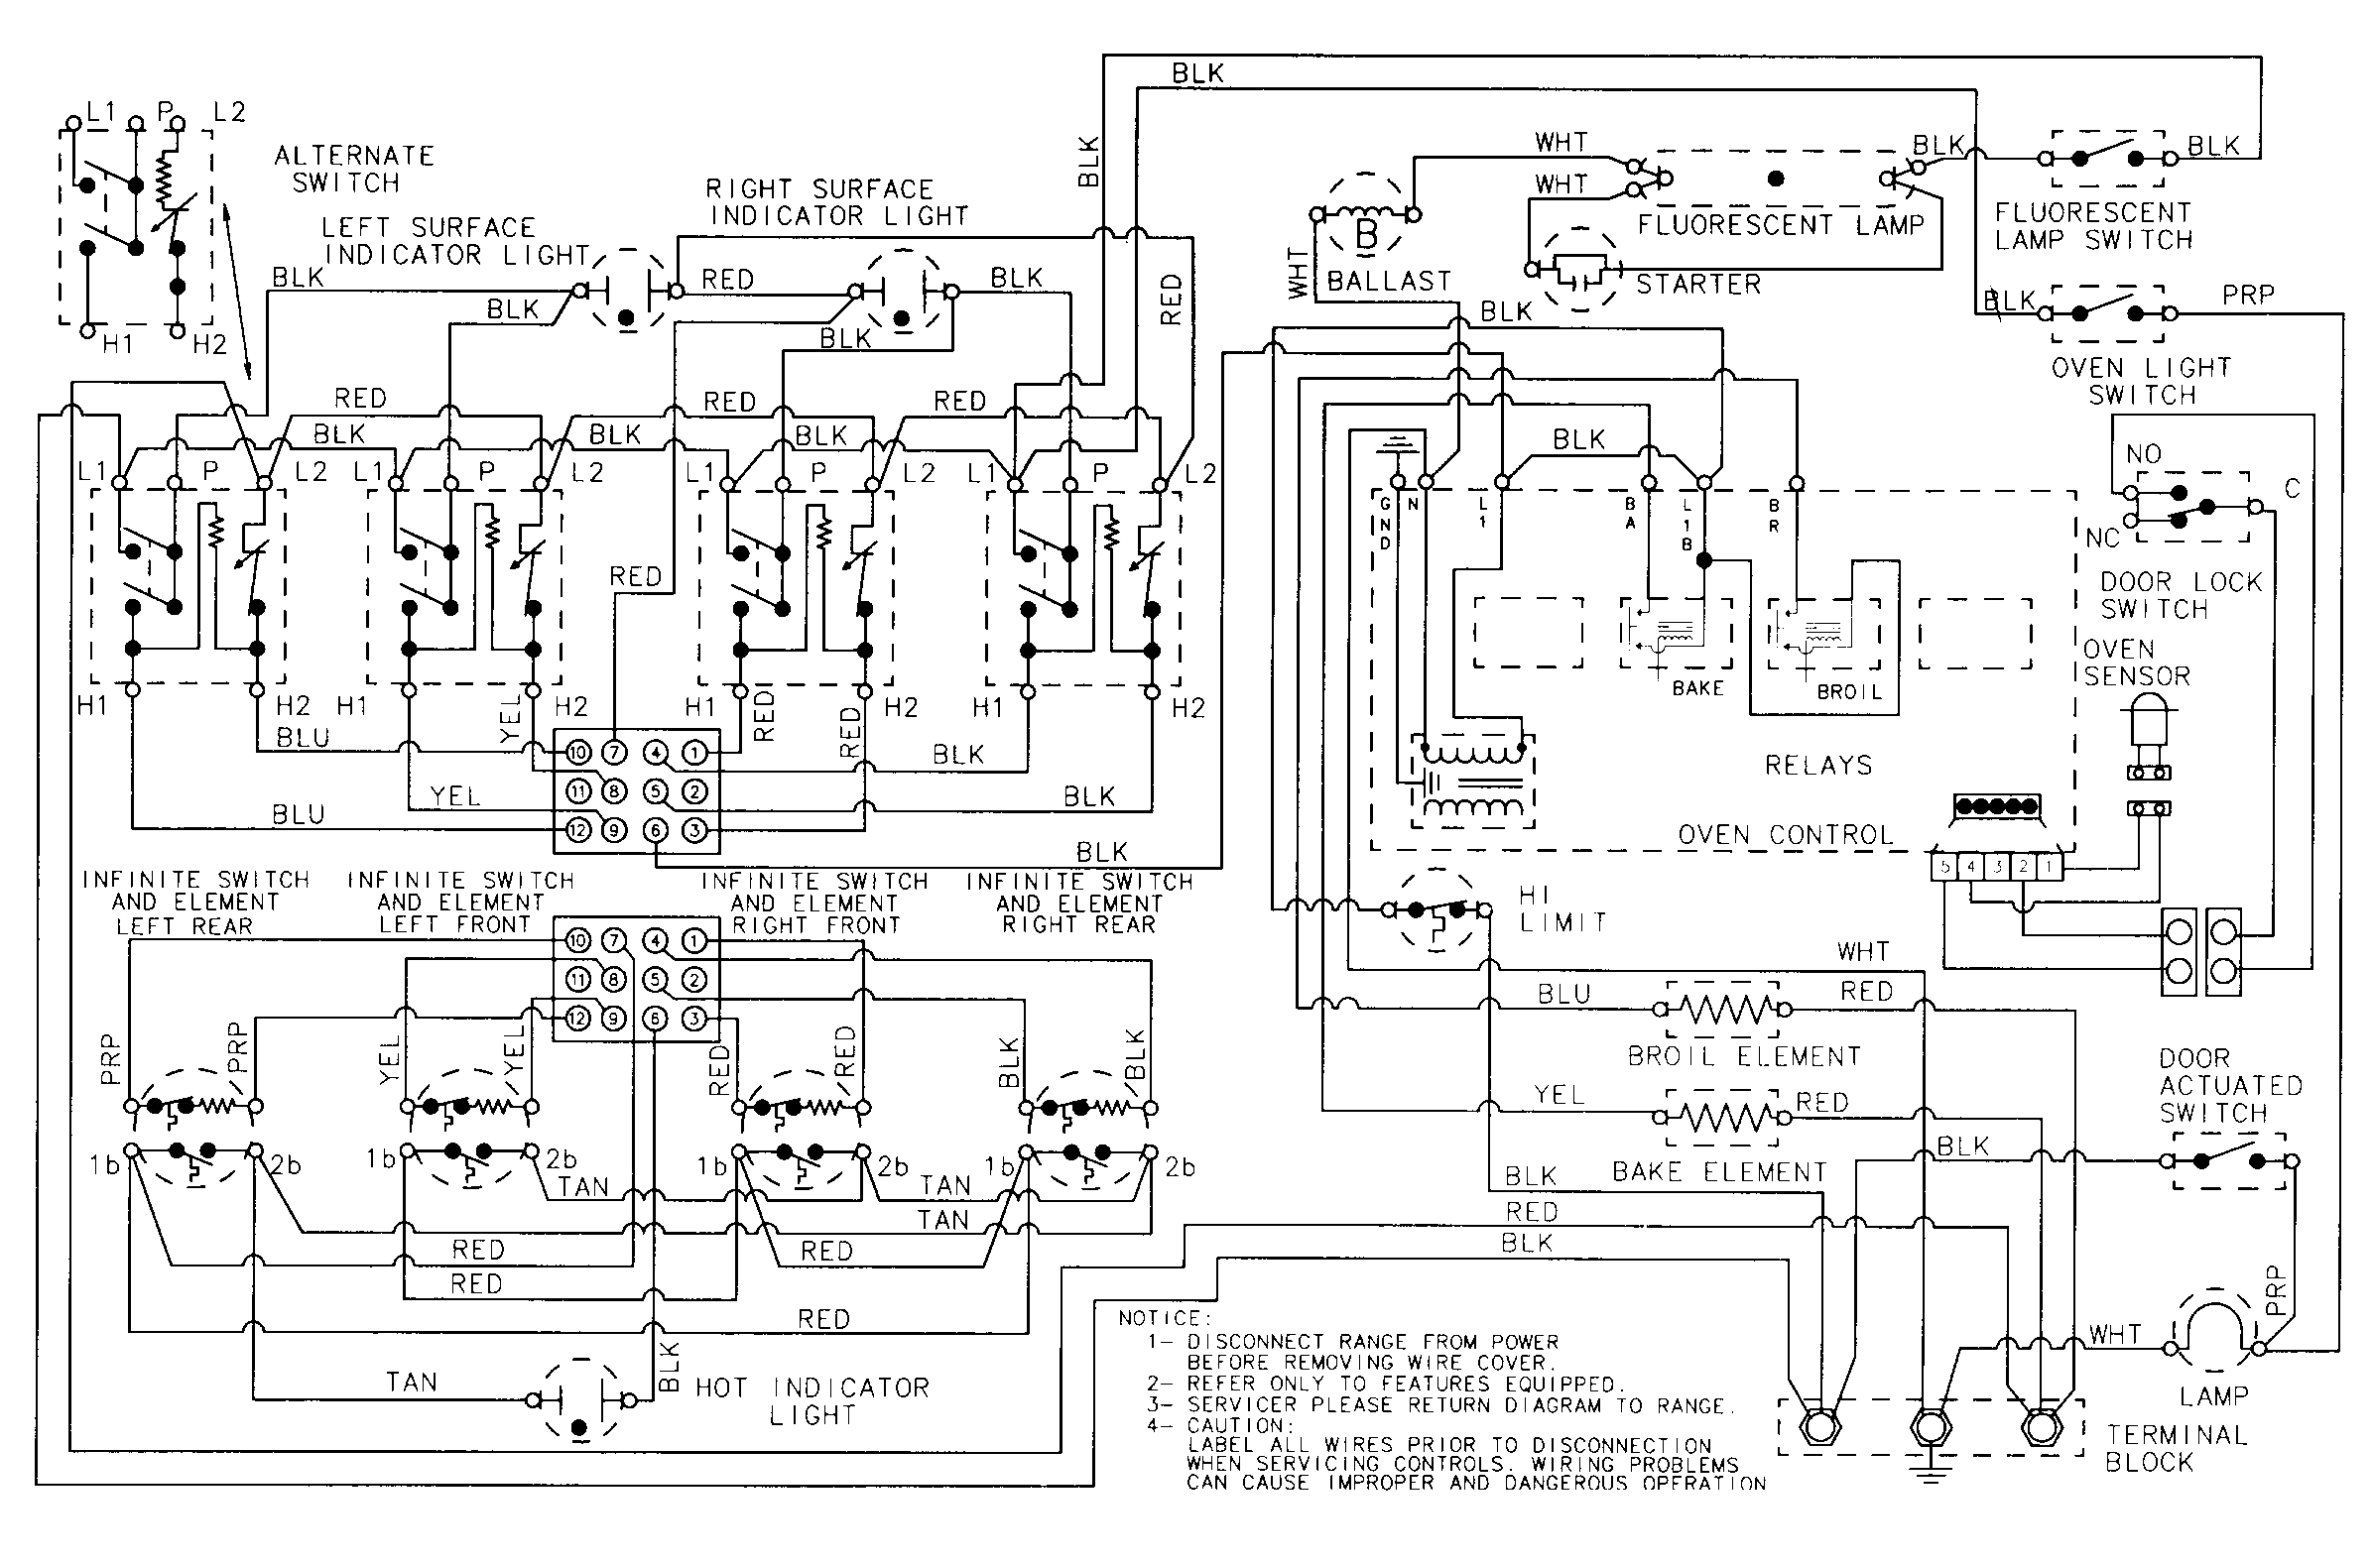 beko fridge freezer thermostat wiring diagram Collection-Beko Fridge Freezer thermostat Wiring Diagram Whirlpool Dishwasher Parts Diagram Best Maytag Cre9600 Timer Stove 14-b